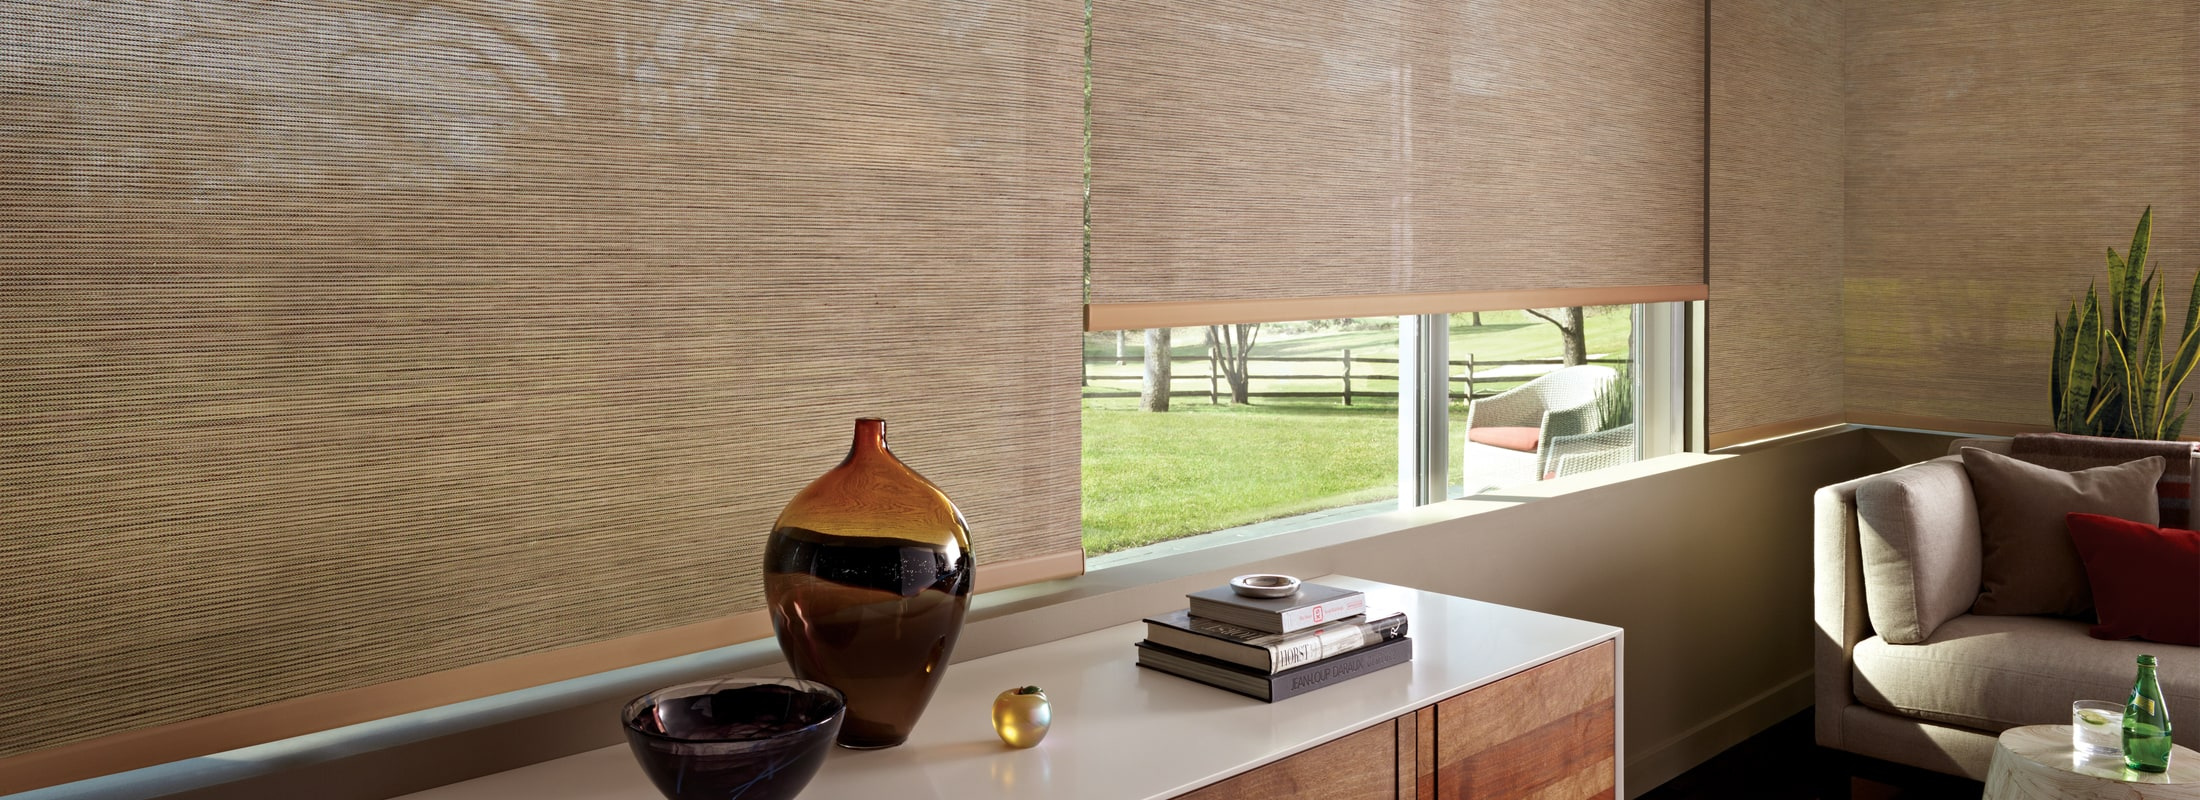 Patio roller shades in Indian Basket Willow Stick - Designer Screen Shades